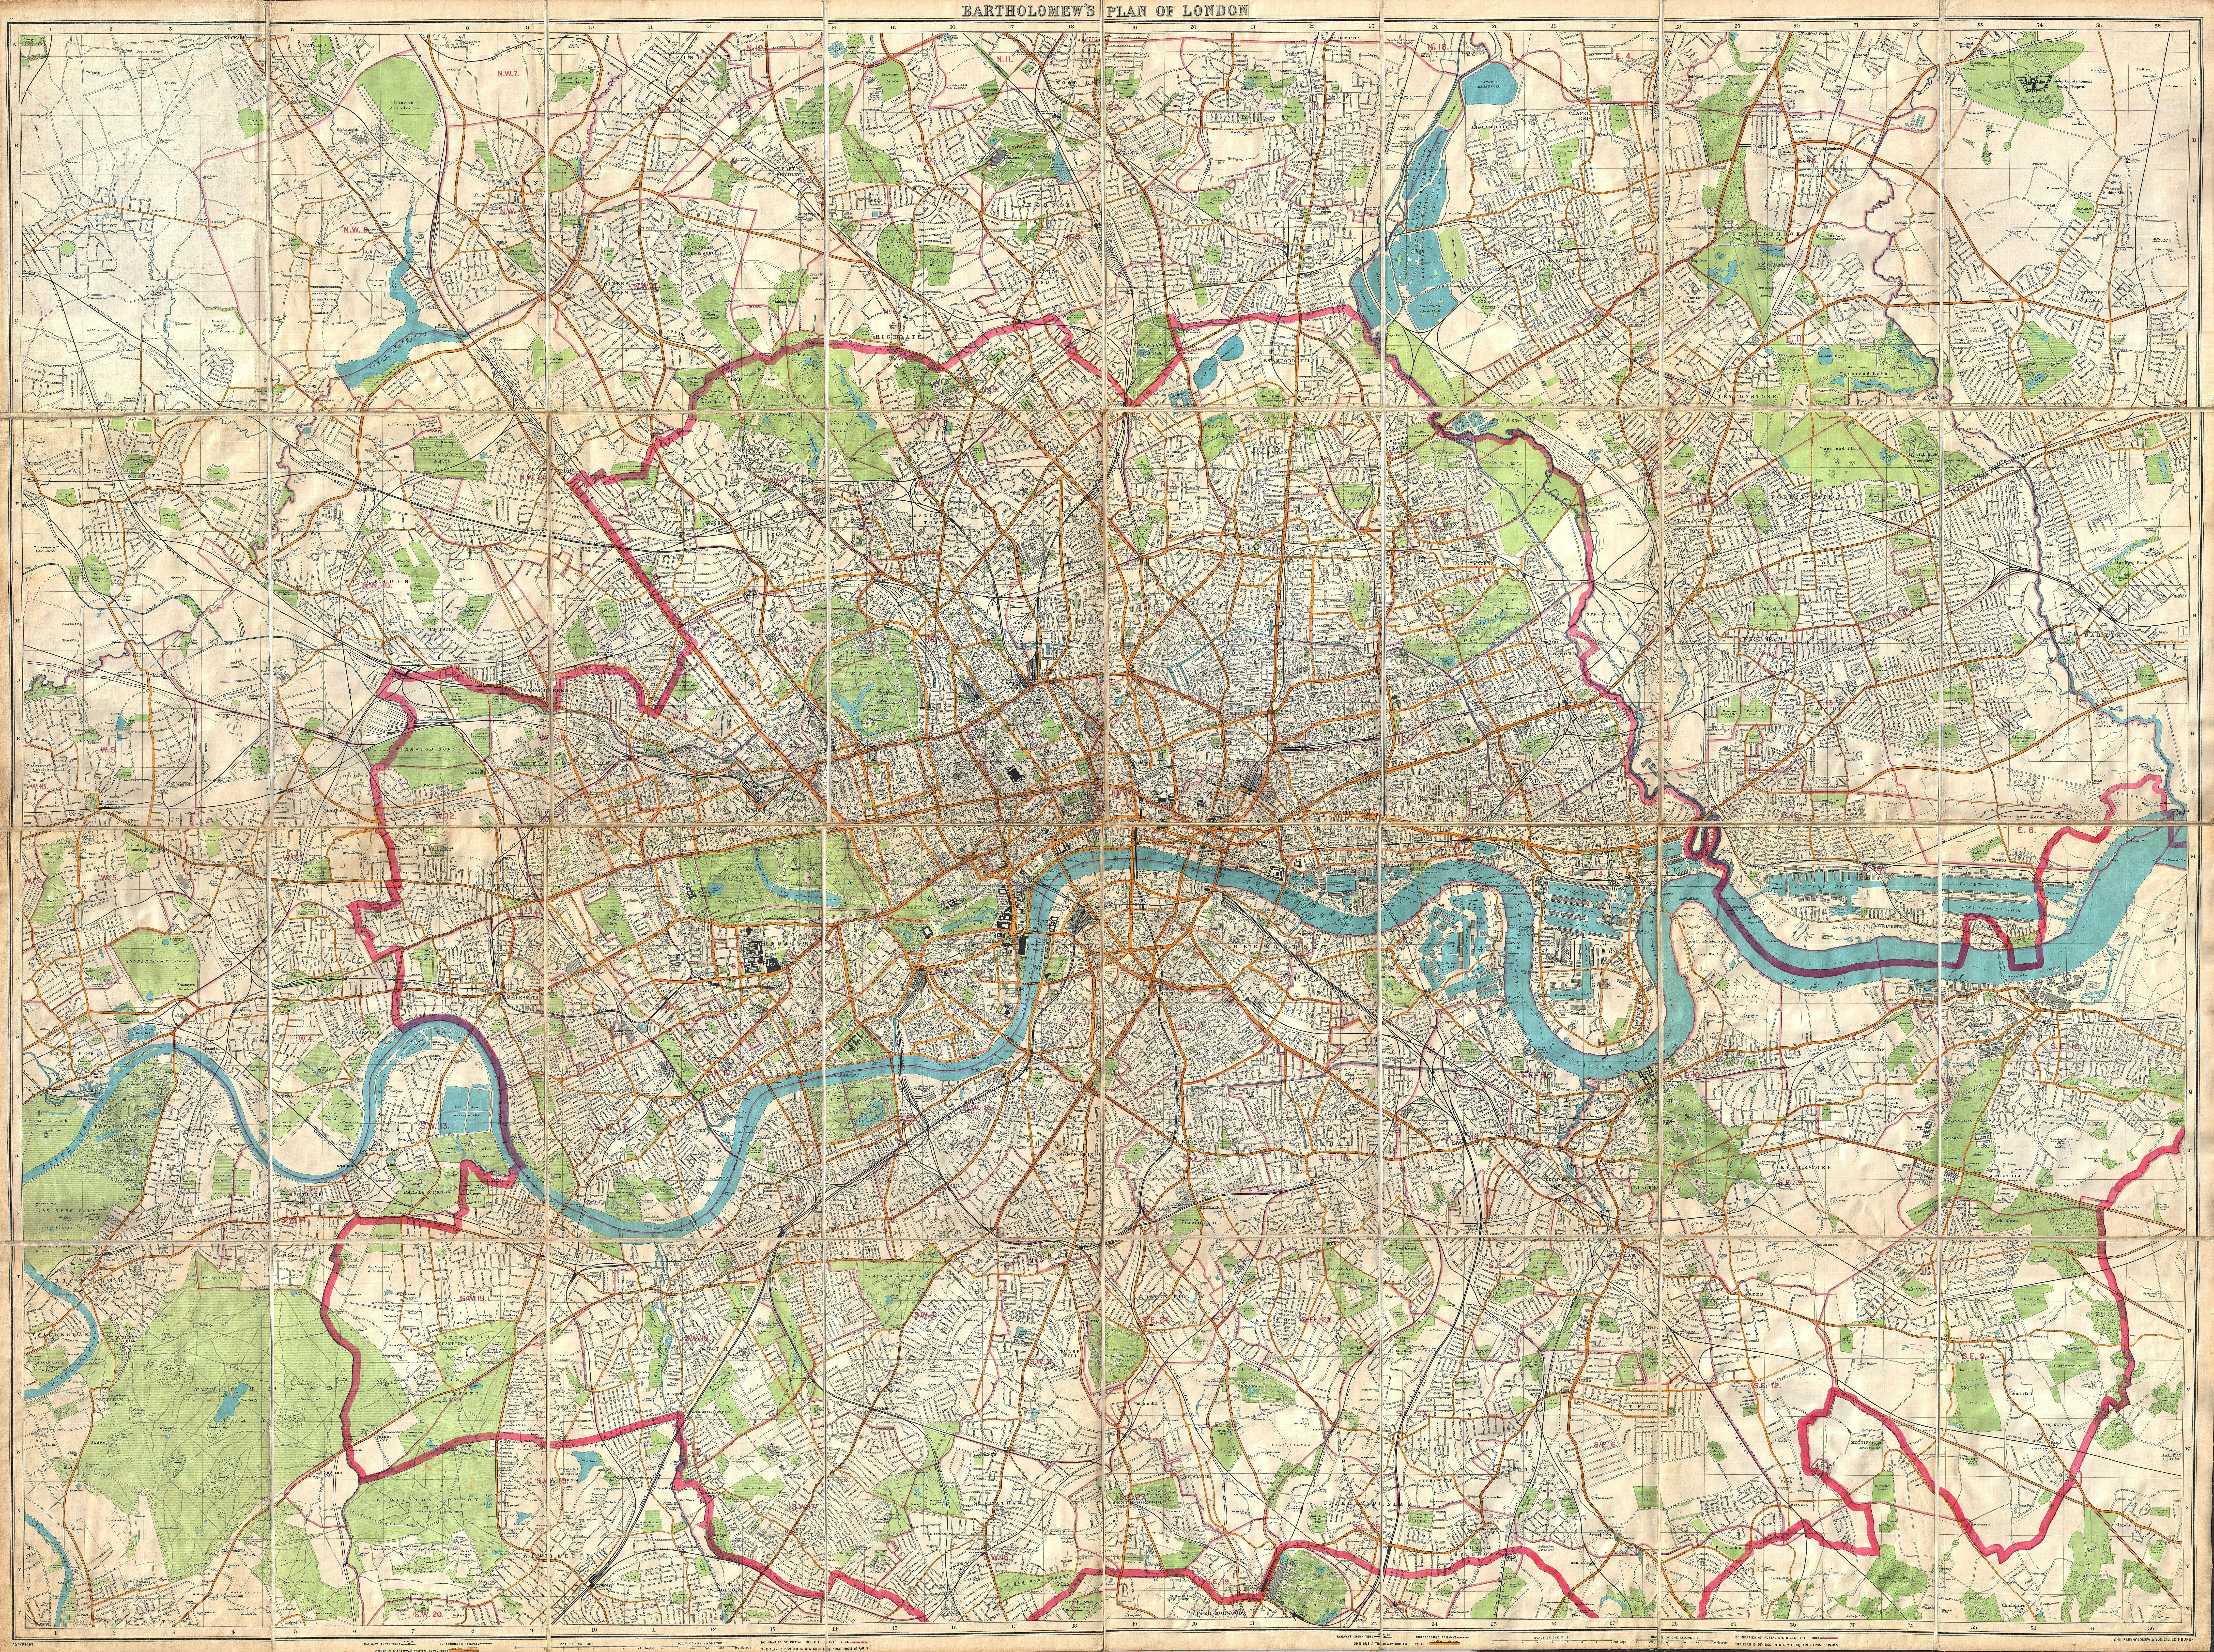 Map Of London England And Surrounding Area.File 1899 Bartholomew Fire Brigade Map Of London England